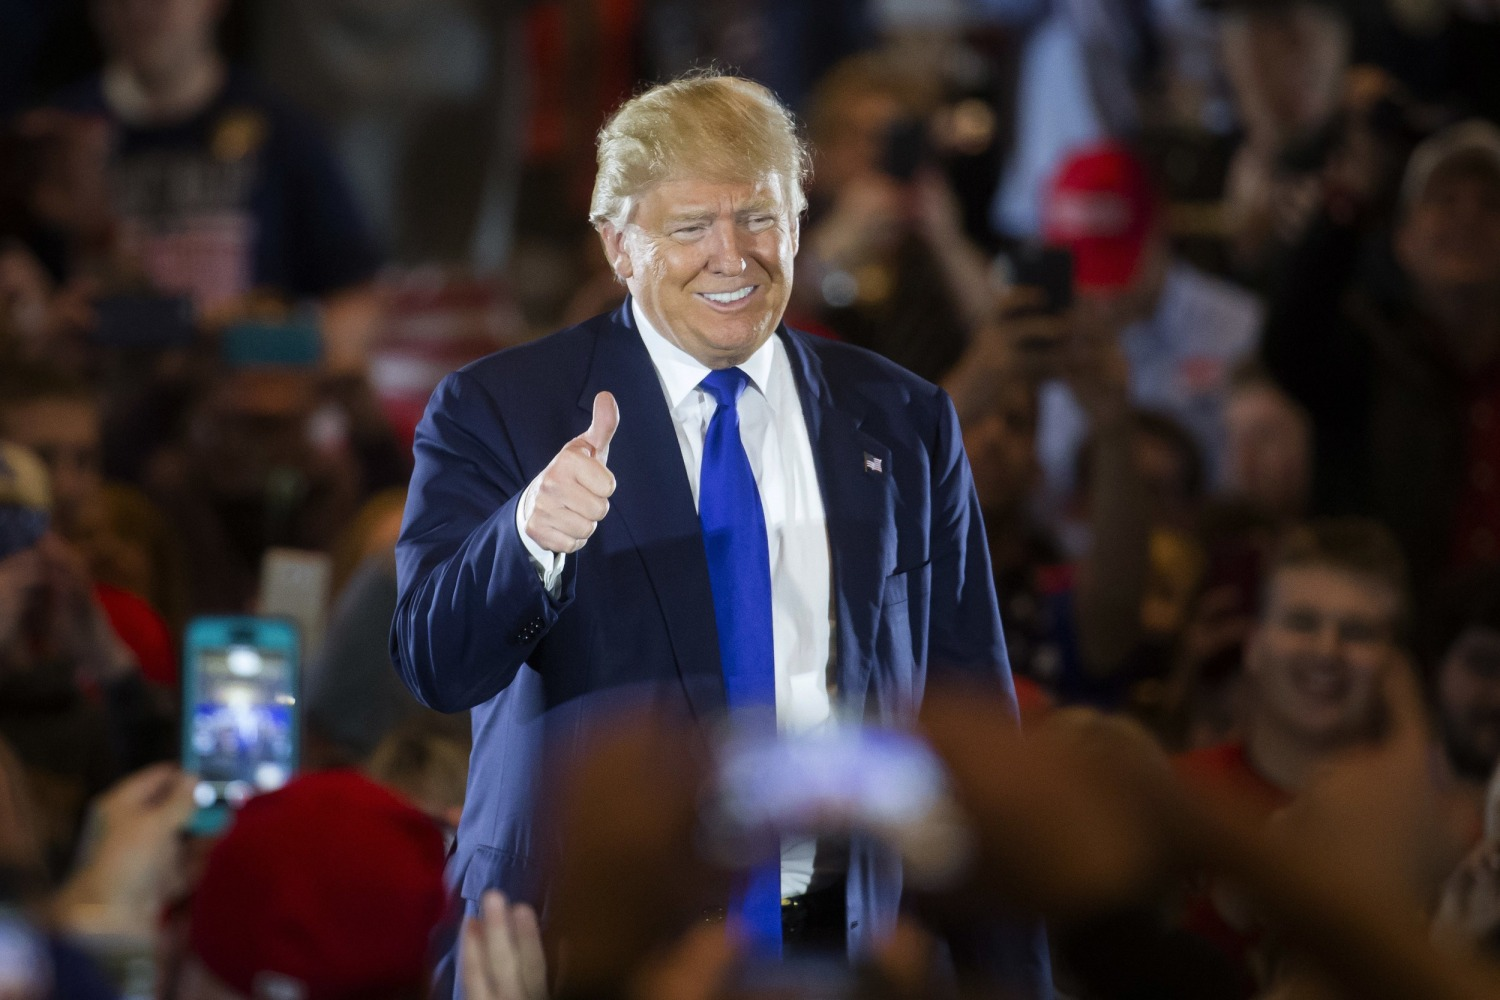 At ohio rally trump shows softer side walks back mccain comments image donald trump publicscrutiny Image collections